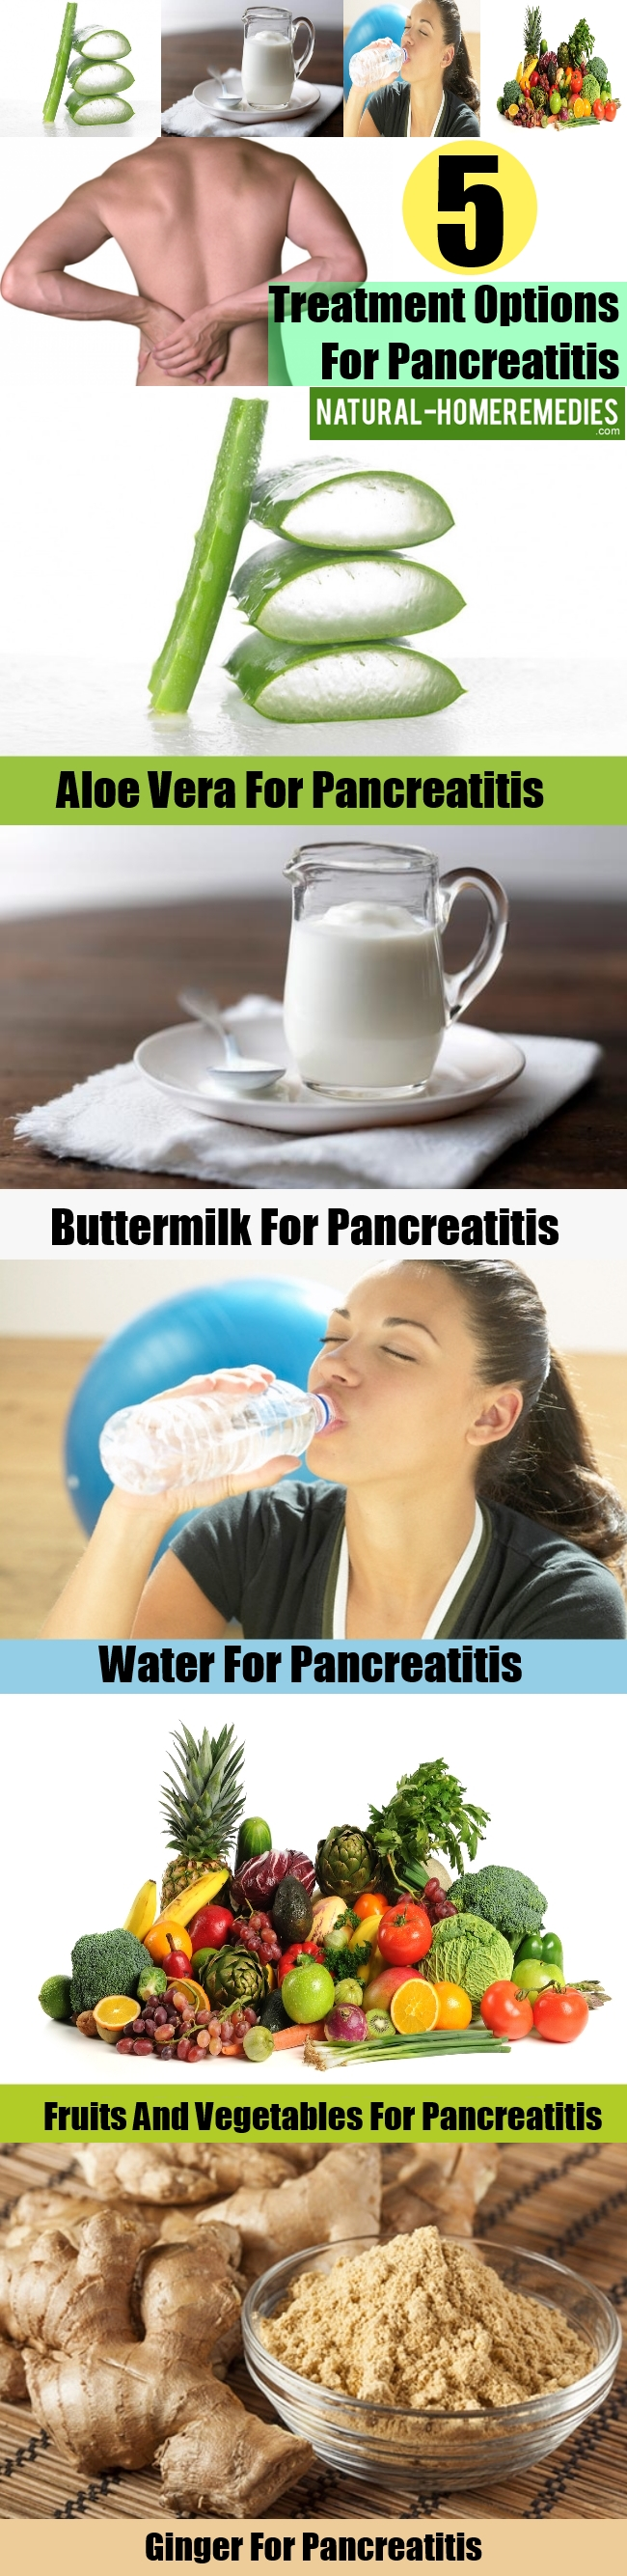 5 Treatment Options For Pancreatitis